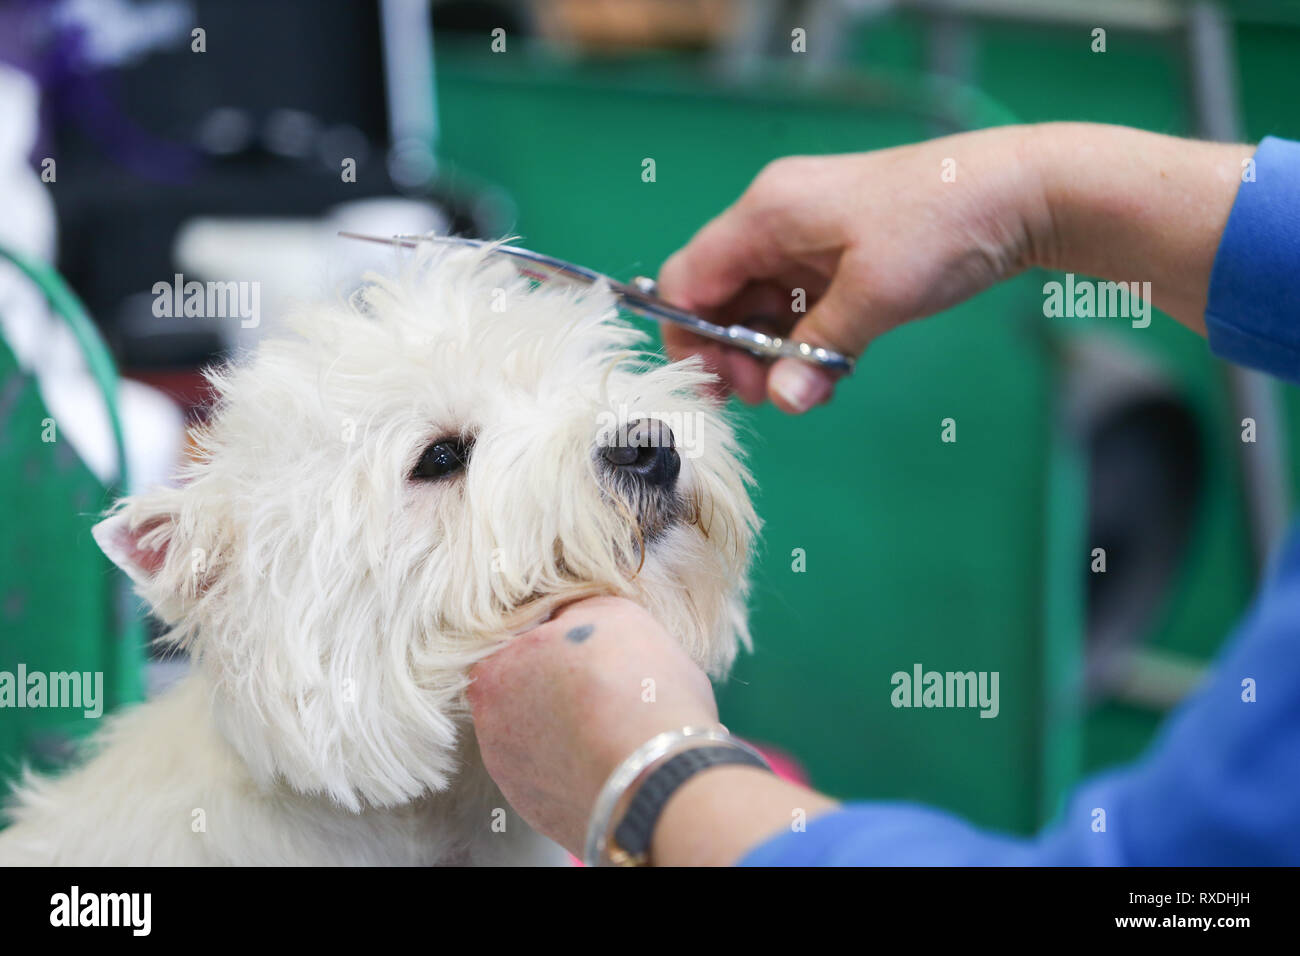 Birmingham, UK. 9th March, 2019. A terrier receives a last minute trim before the show. Credit: Peter Lopeman/Alamy Live News - Stock Image